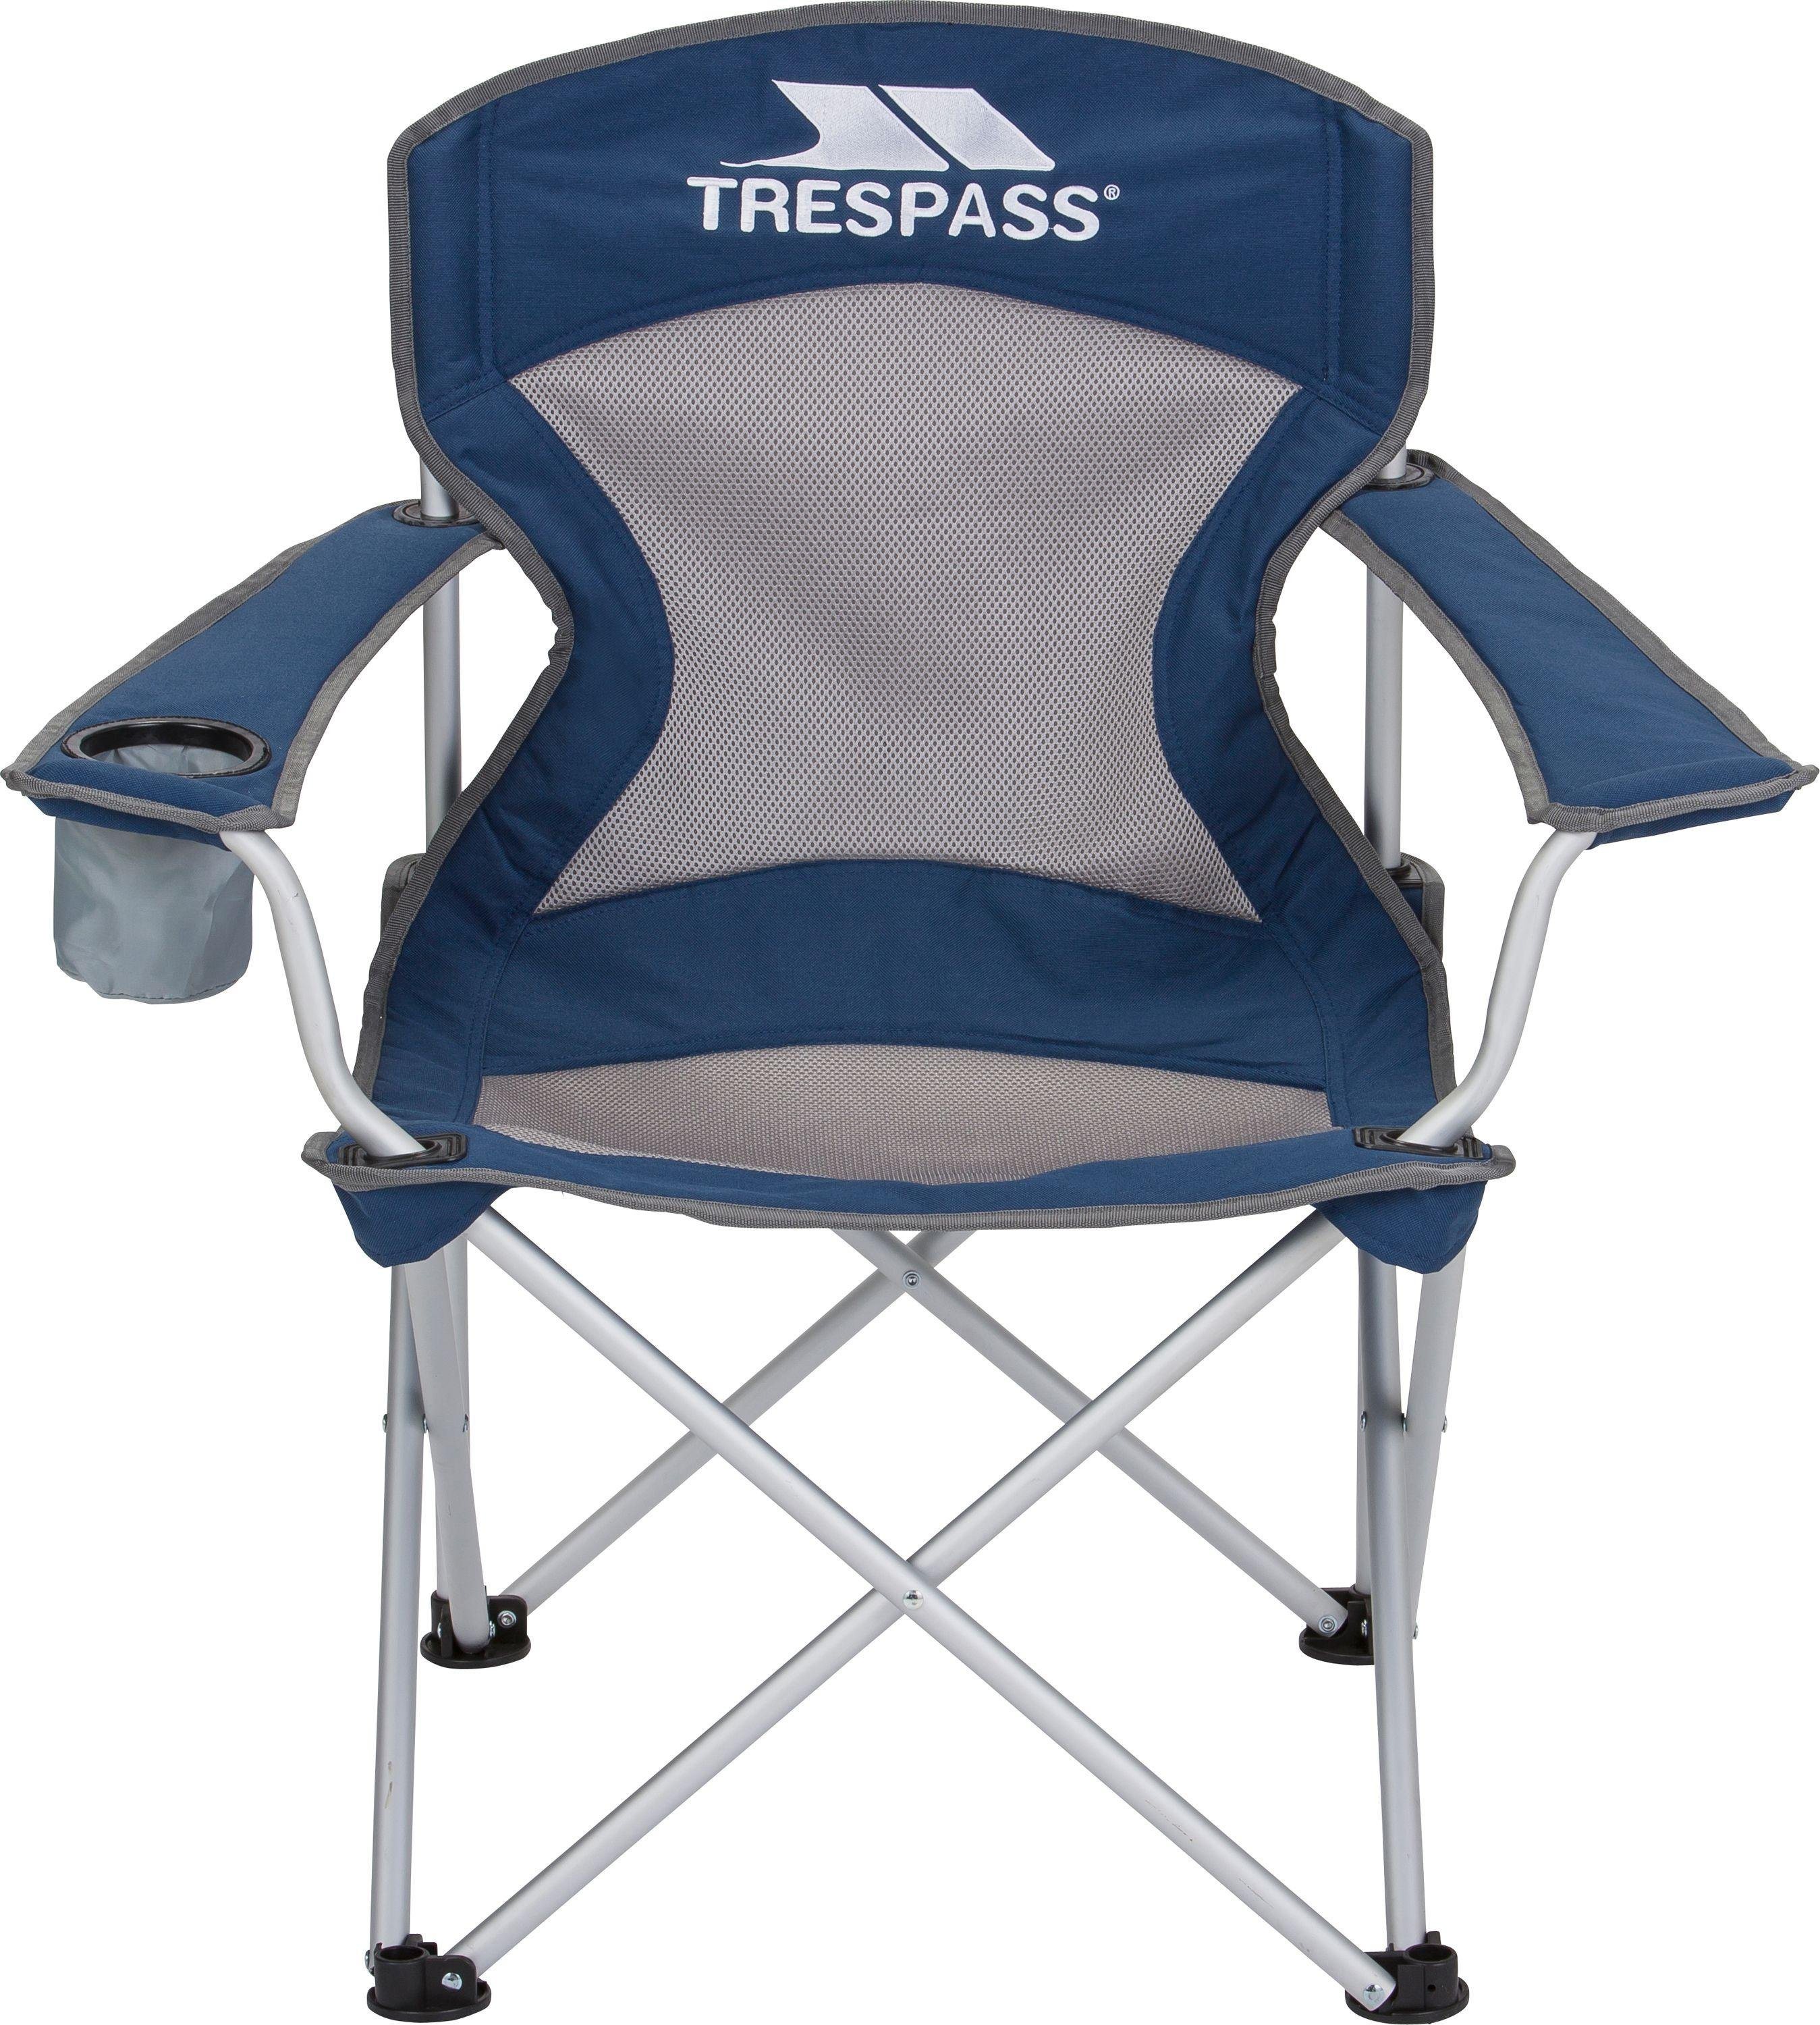 Trespass - Alum Deluxe Camping Chair lowest price